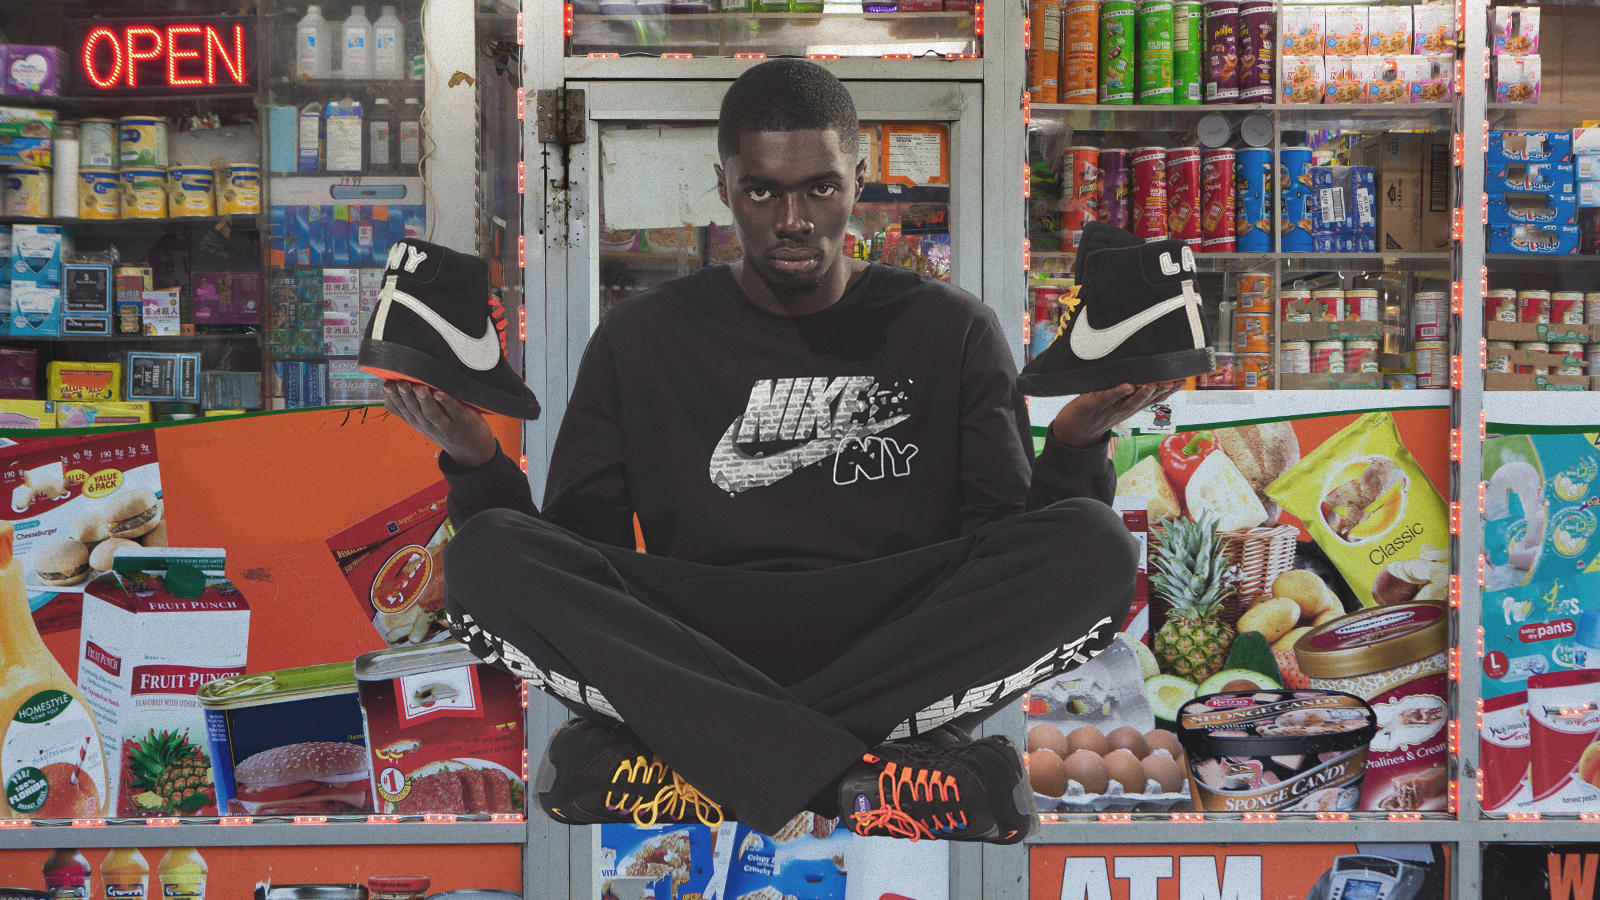 Sheckwes am95 blazer 1 hd 1600